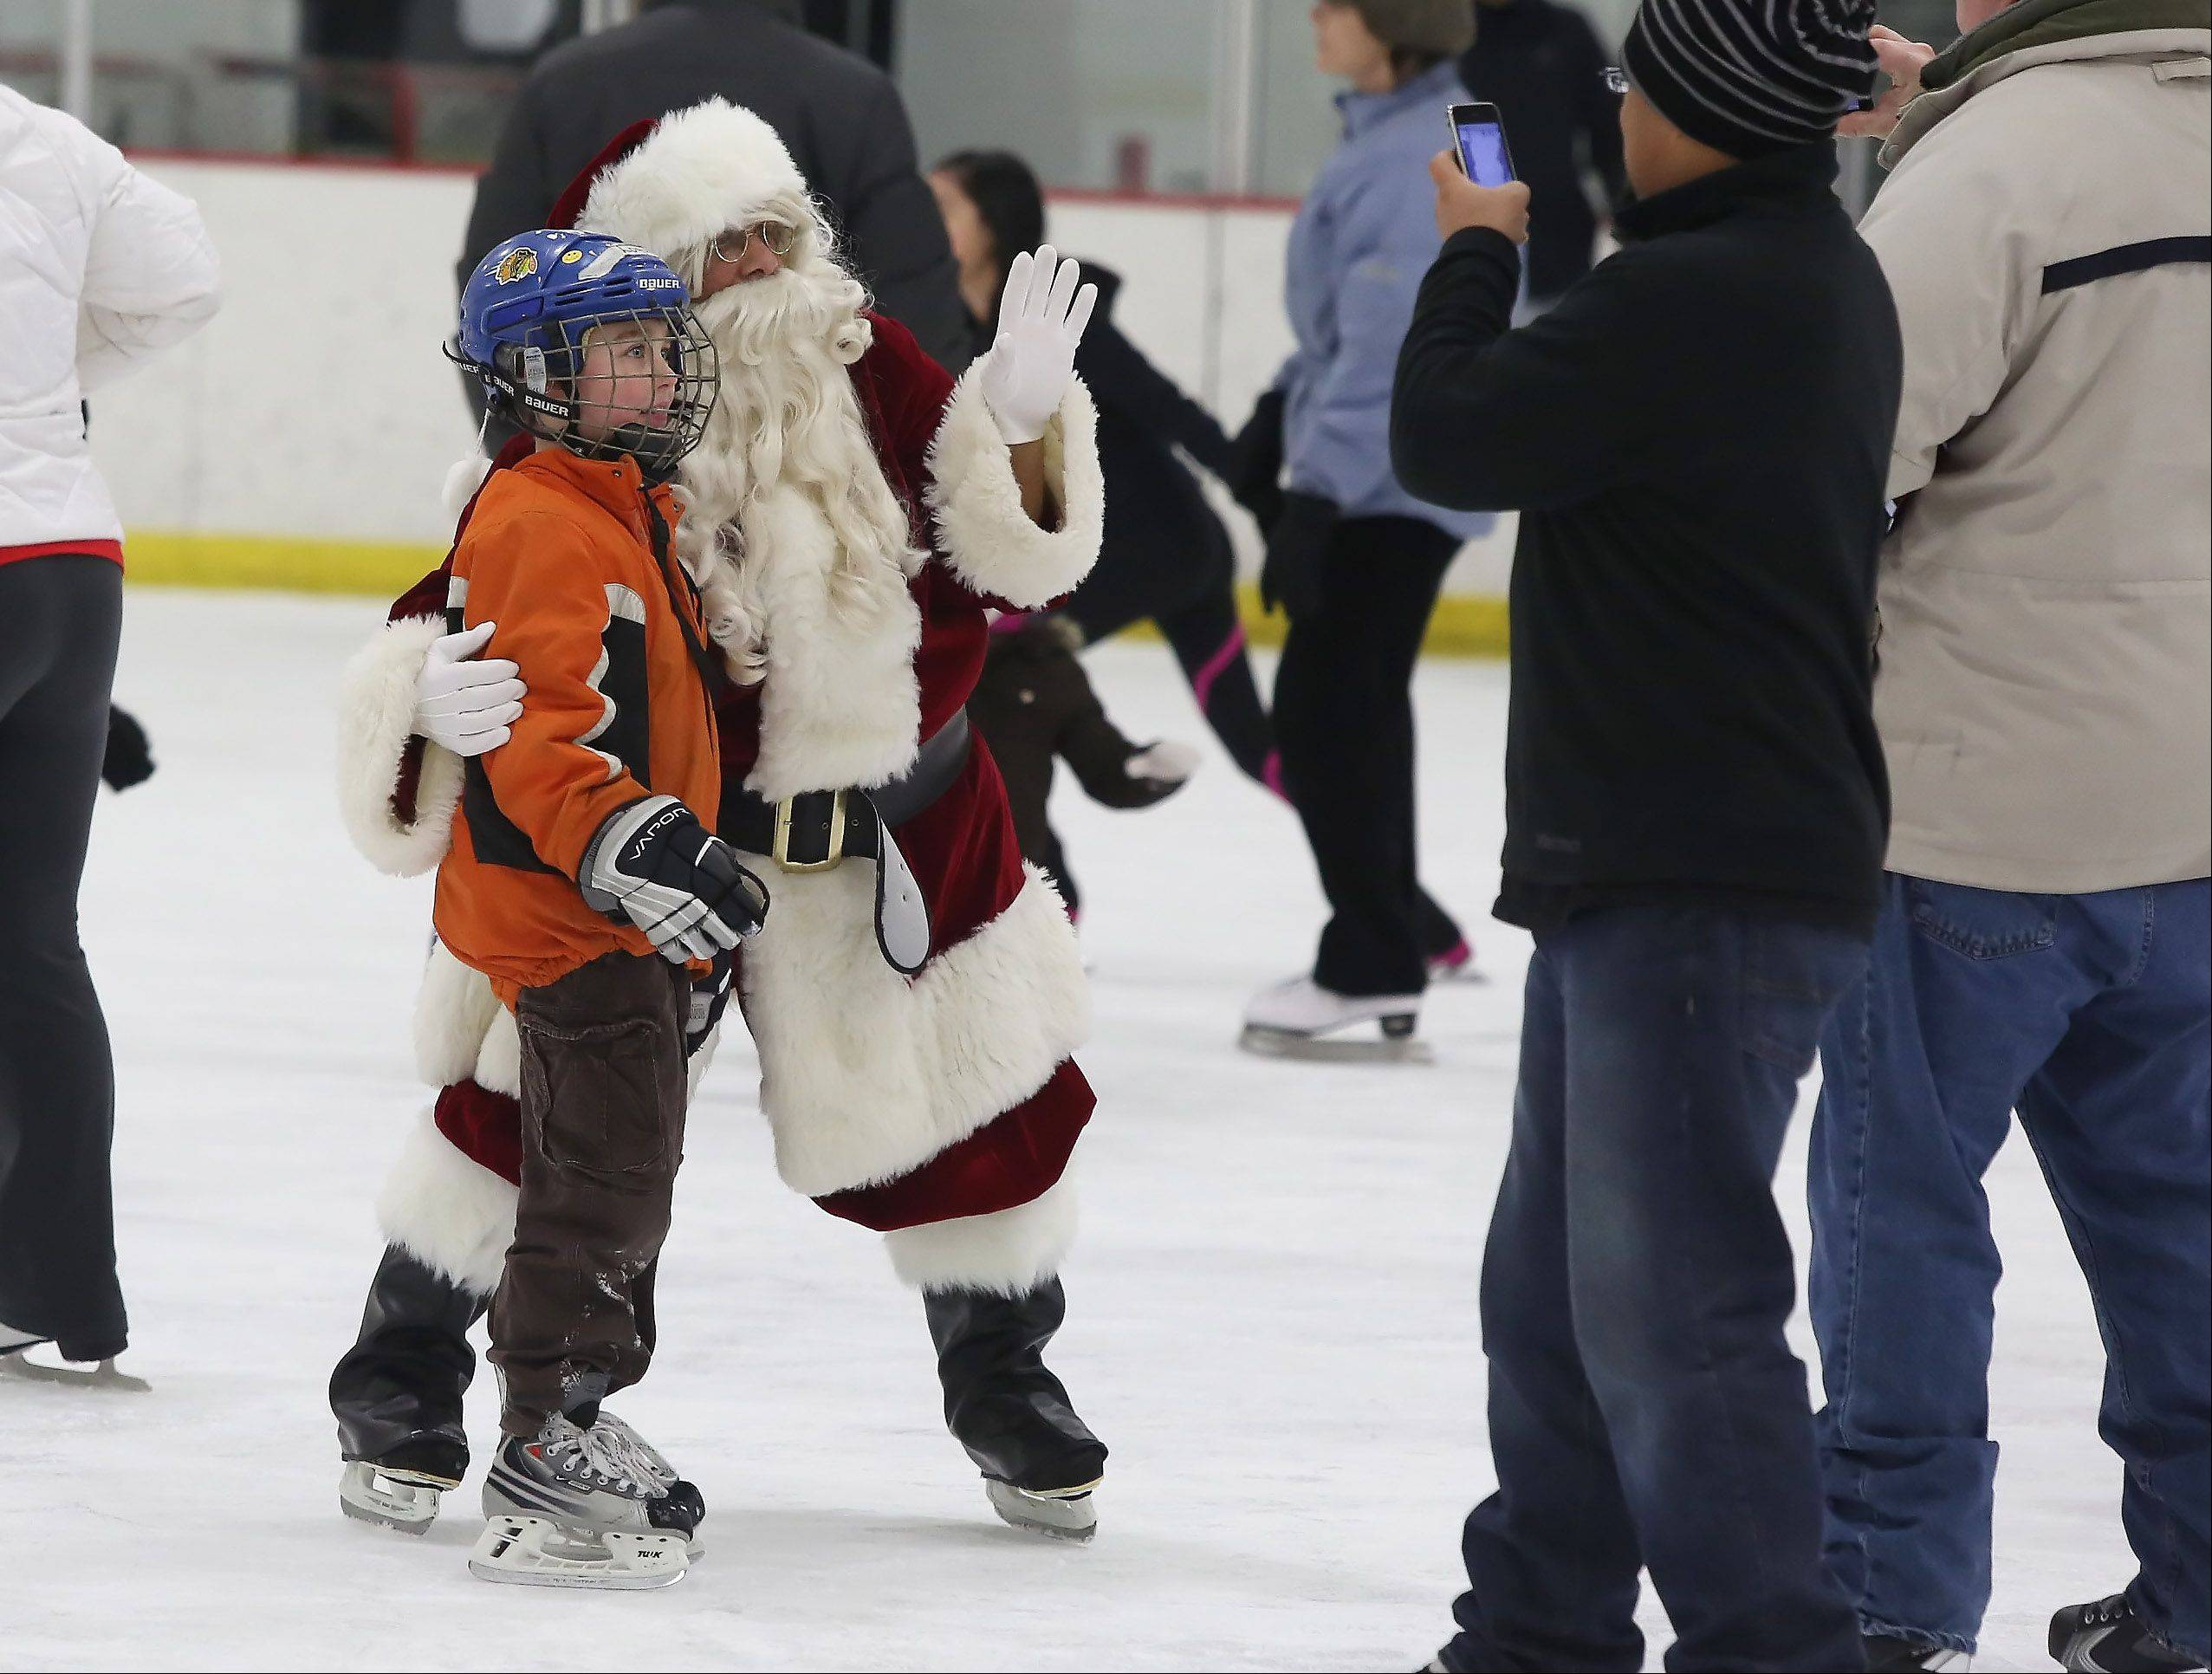 Santa Claus poses for pictures Sunday during Skate with Santa at Triphahn Ice Arena in Hoffman Estates. Families enjoyed open skating with Mr. and Mrs. Claus as well as Frosty the Snowman.